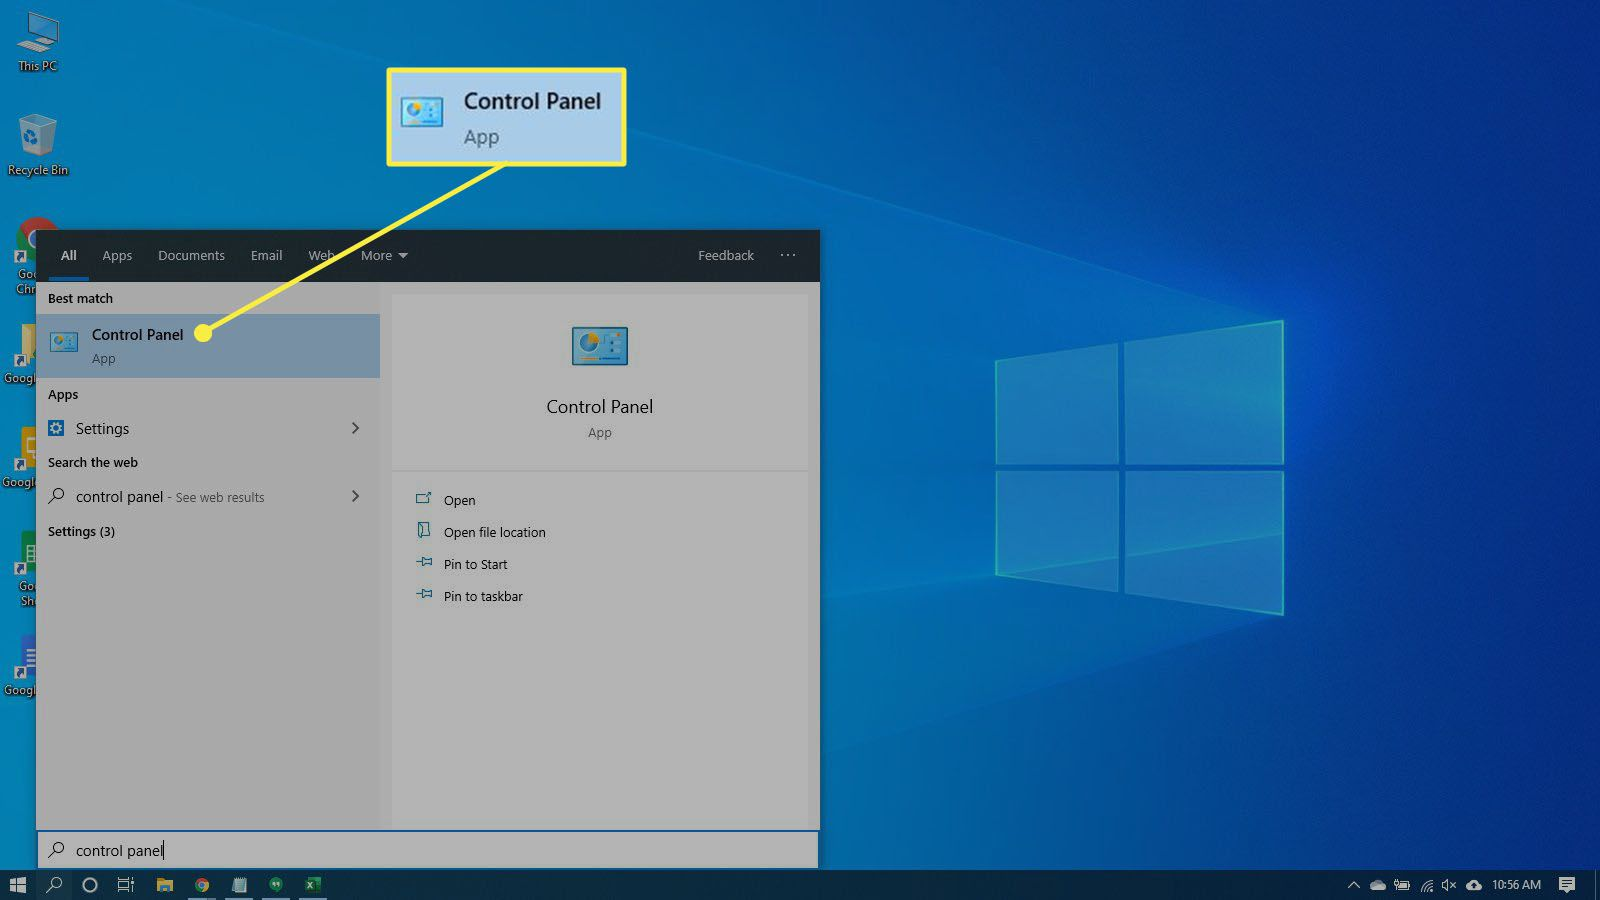 Searching for the Control Panel App in Windows 10.